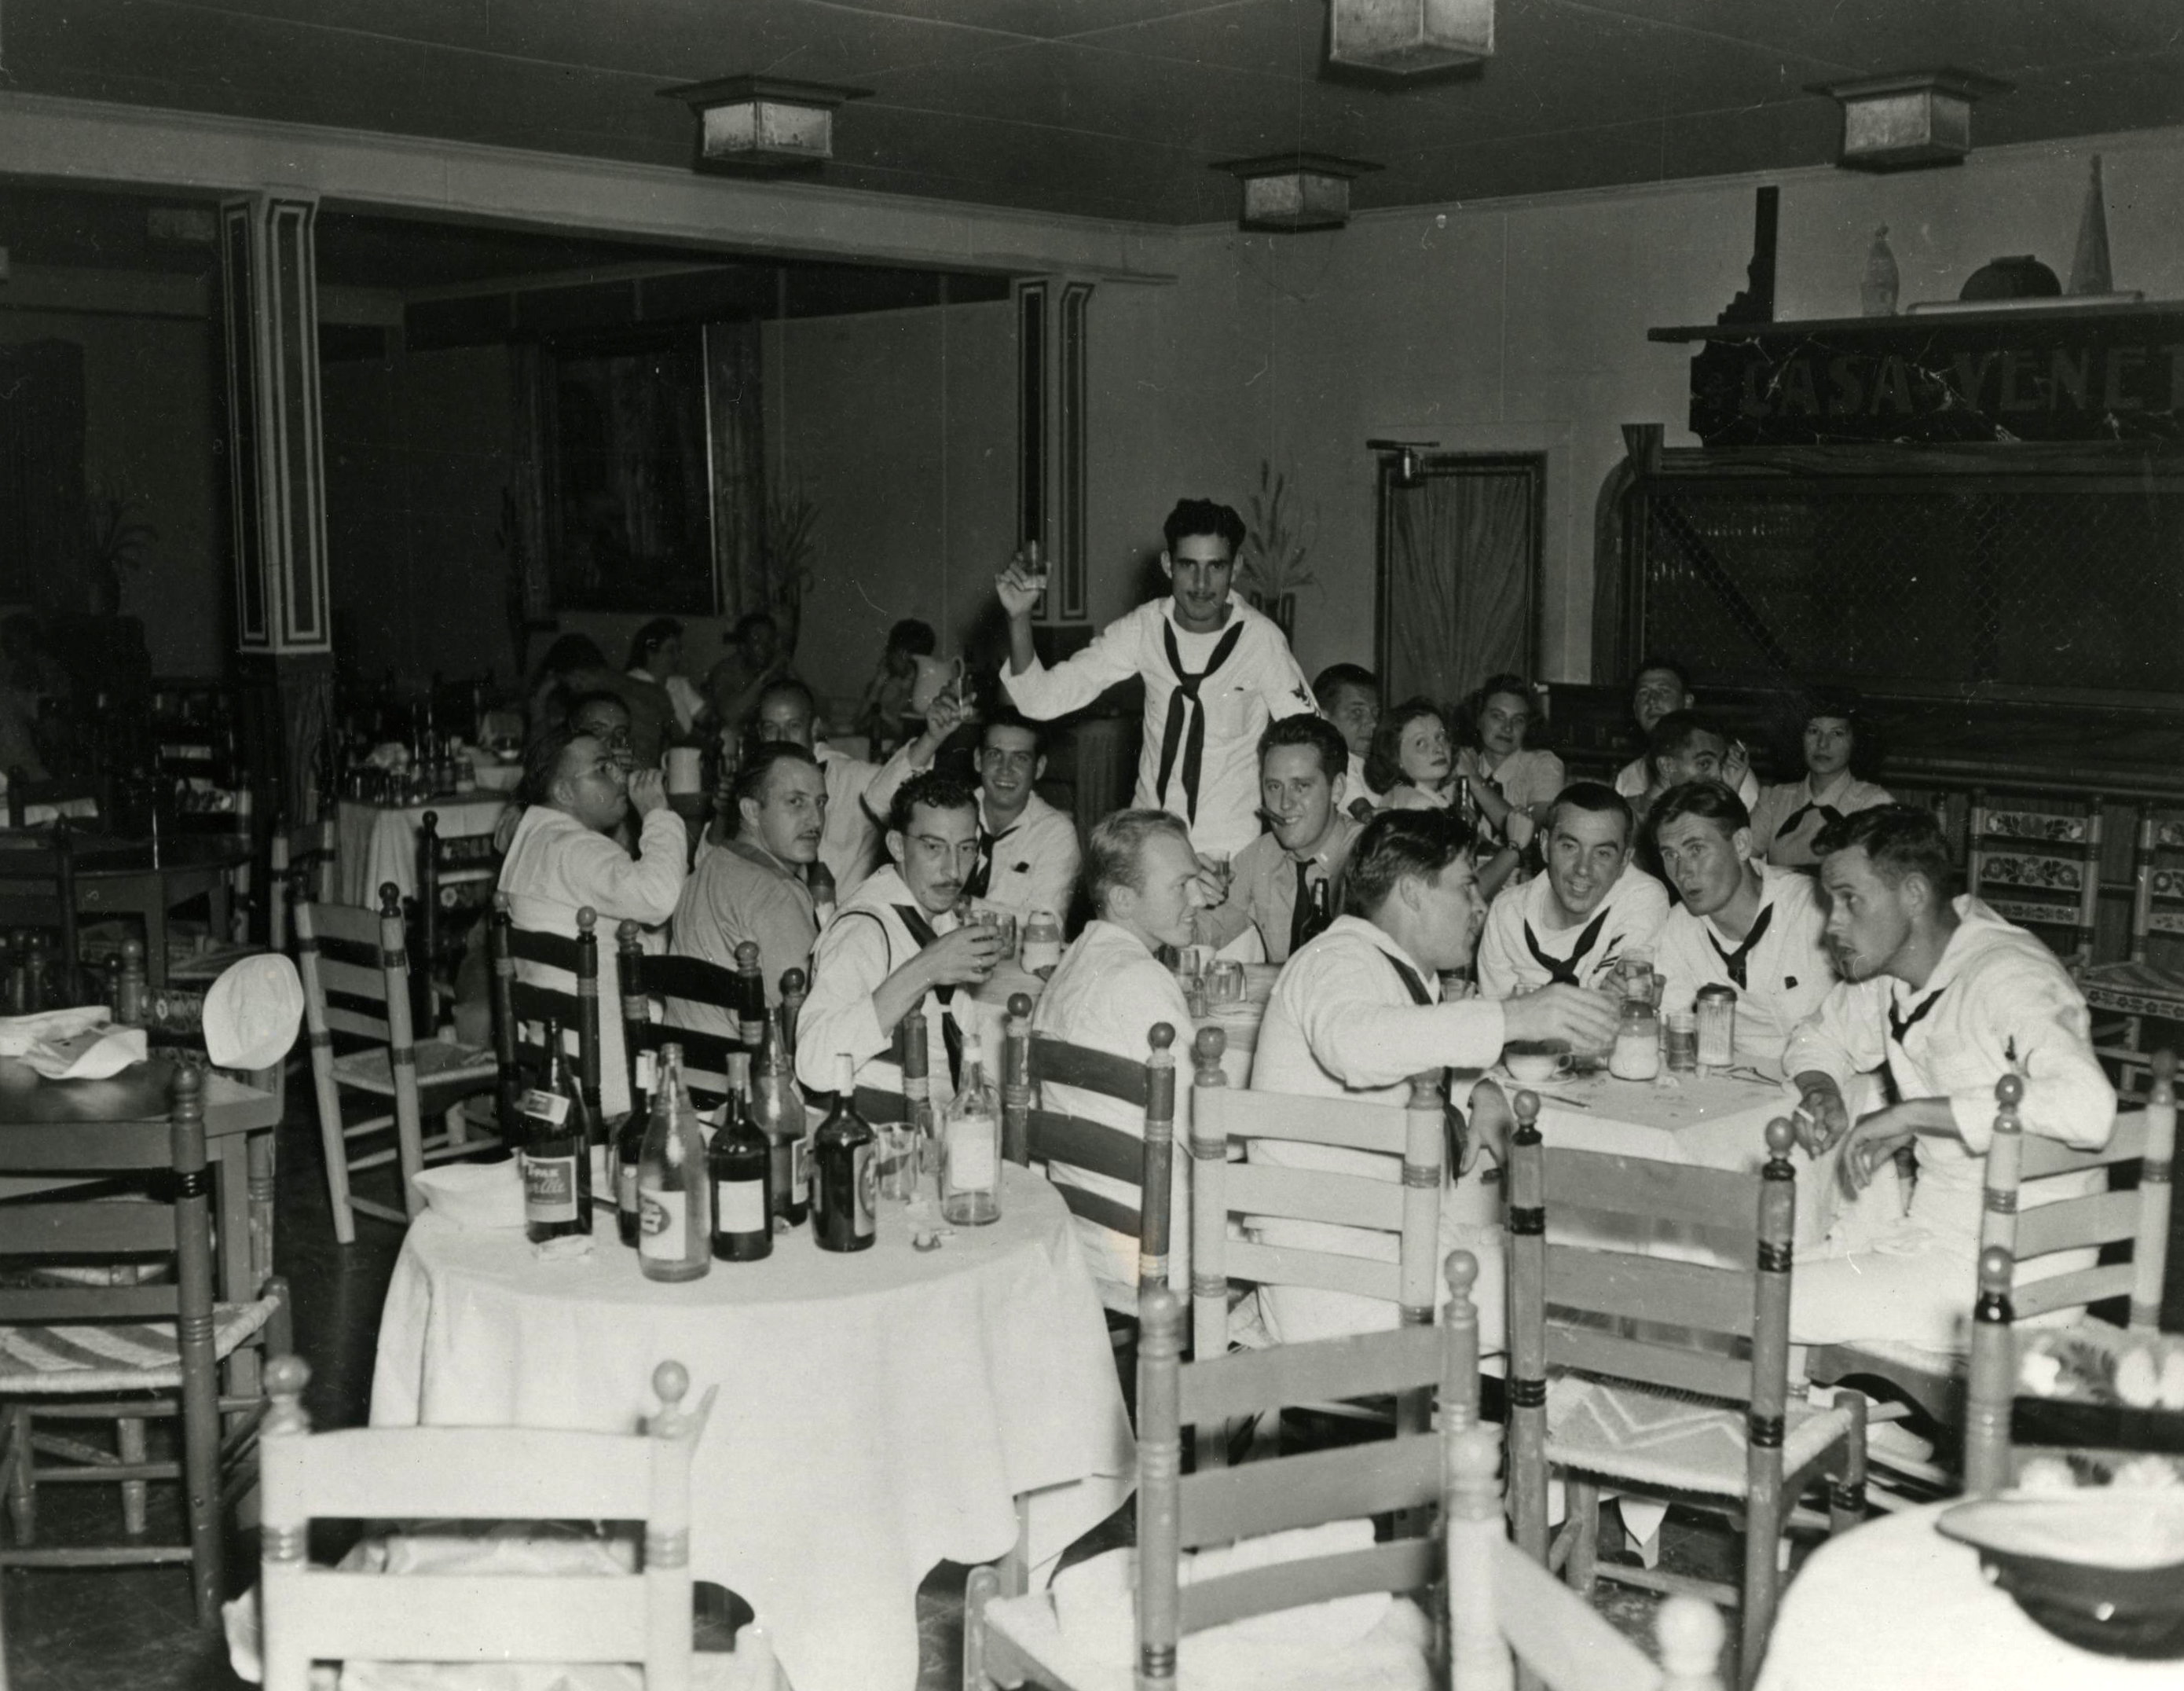 Tom McCall in the navy, seated far right